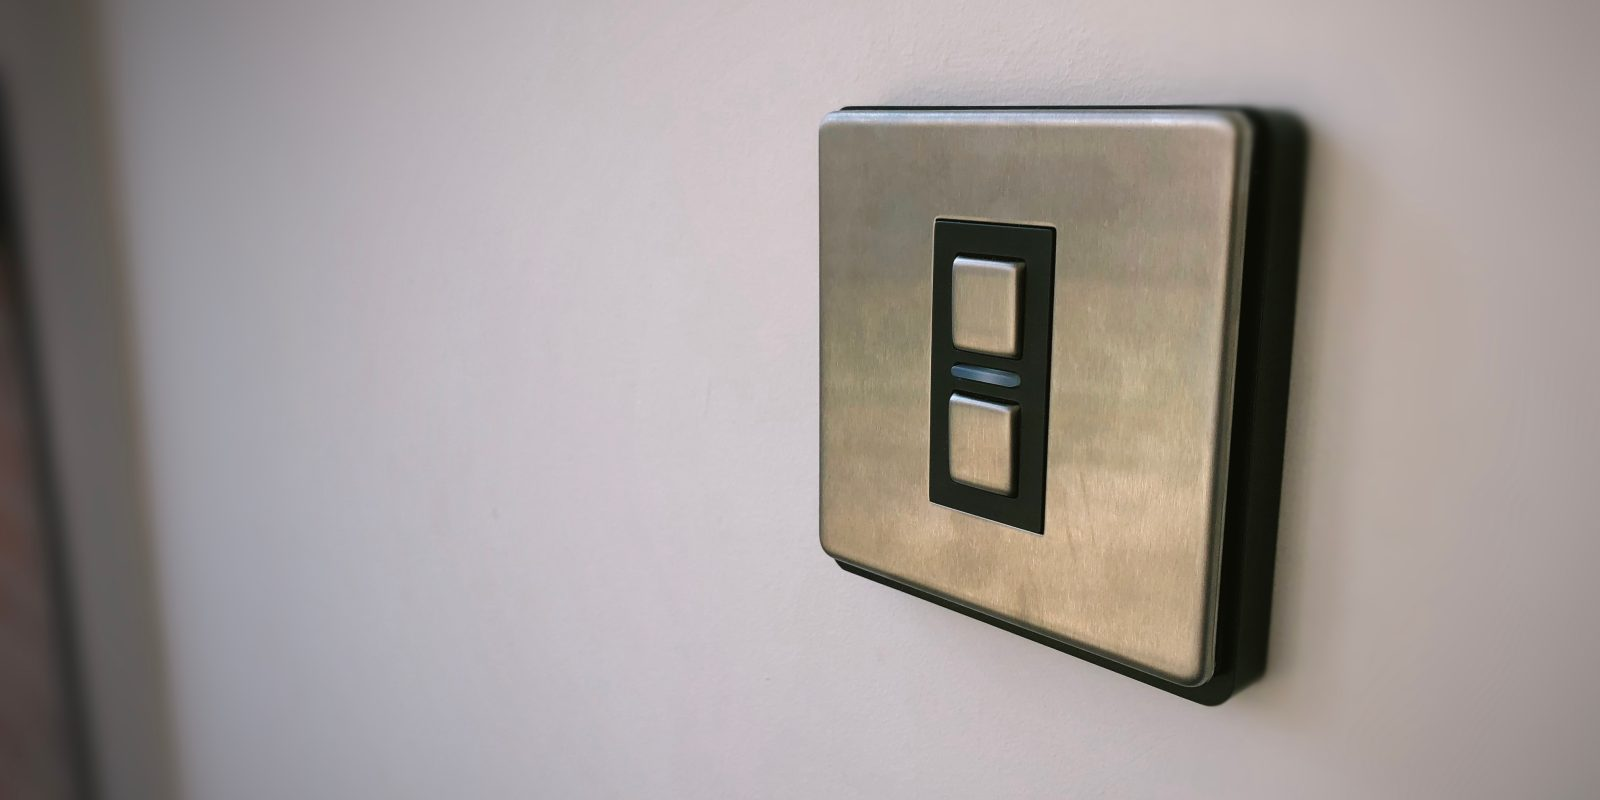 review lightwave light switch the best uk homekit solution for smart lighting [ 1600 x 800 Pixel ]